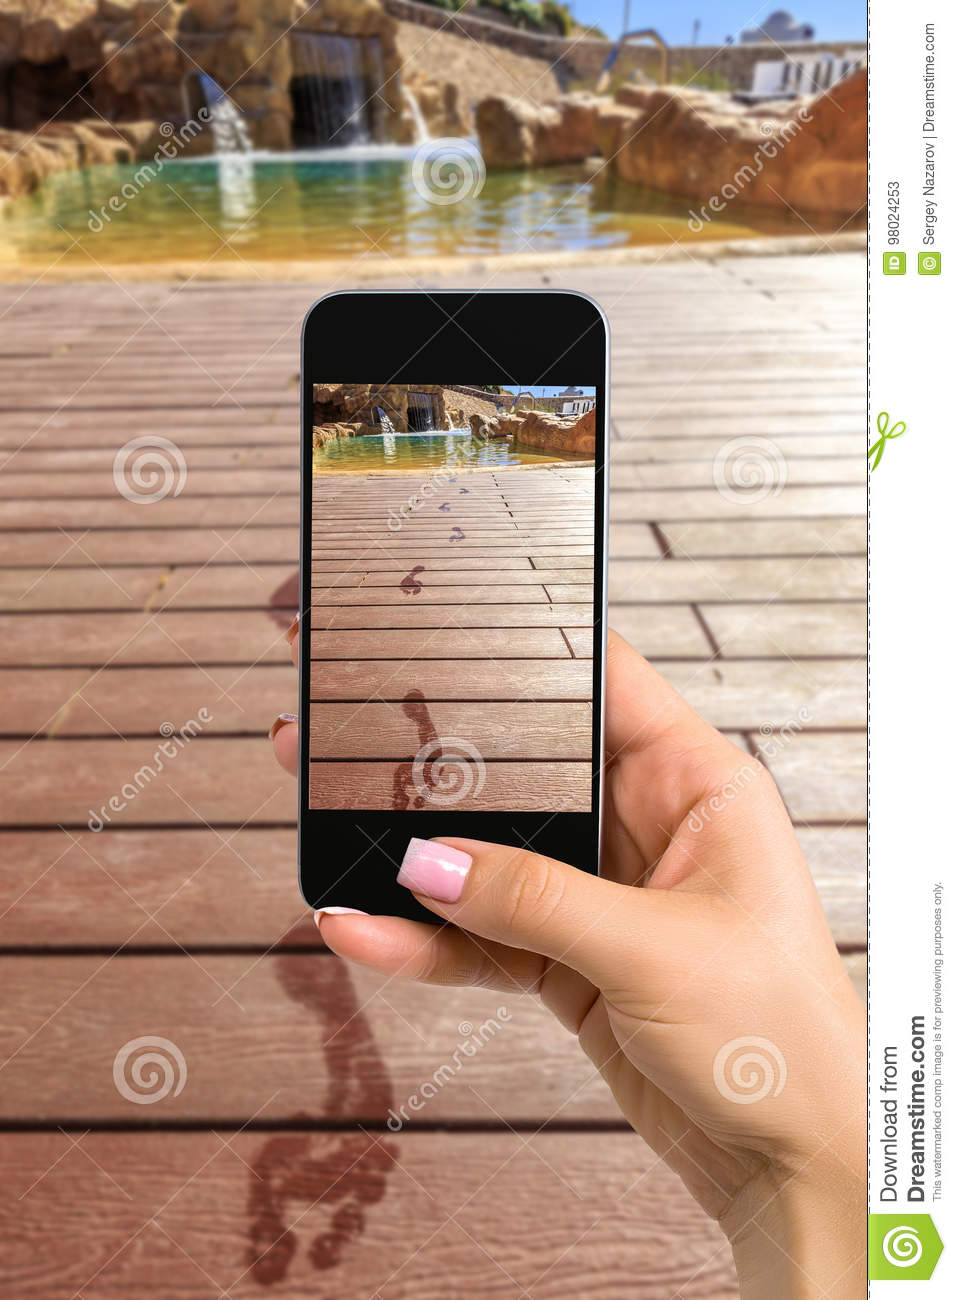 Closely image of female hands holding mobile phone with photo camera mode on the screen. Cropped image of footprints on